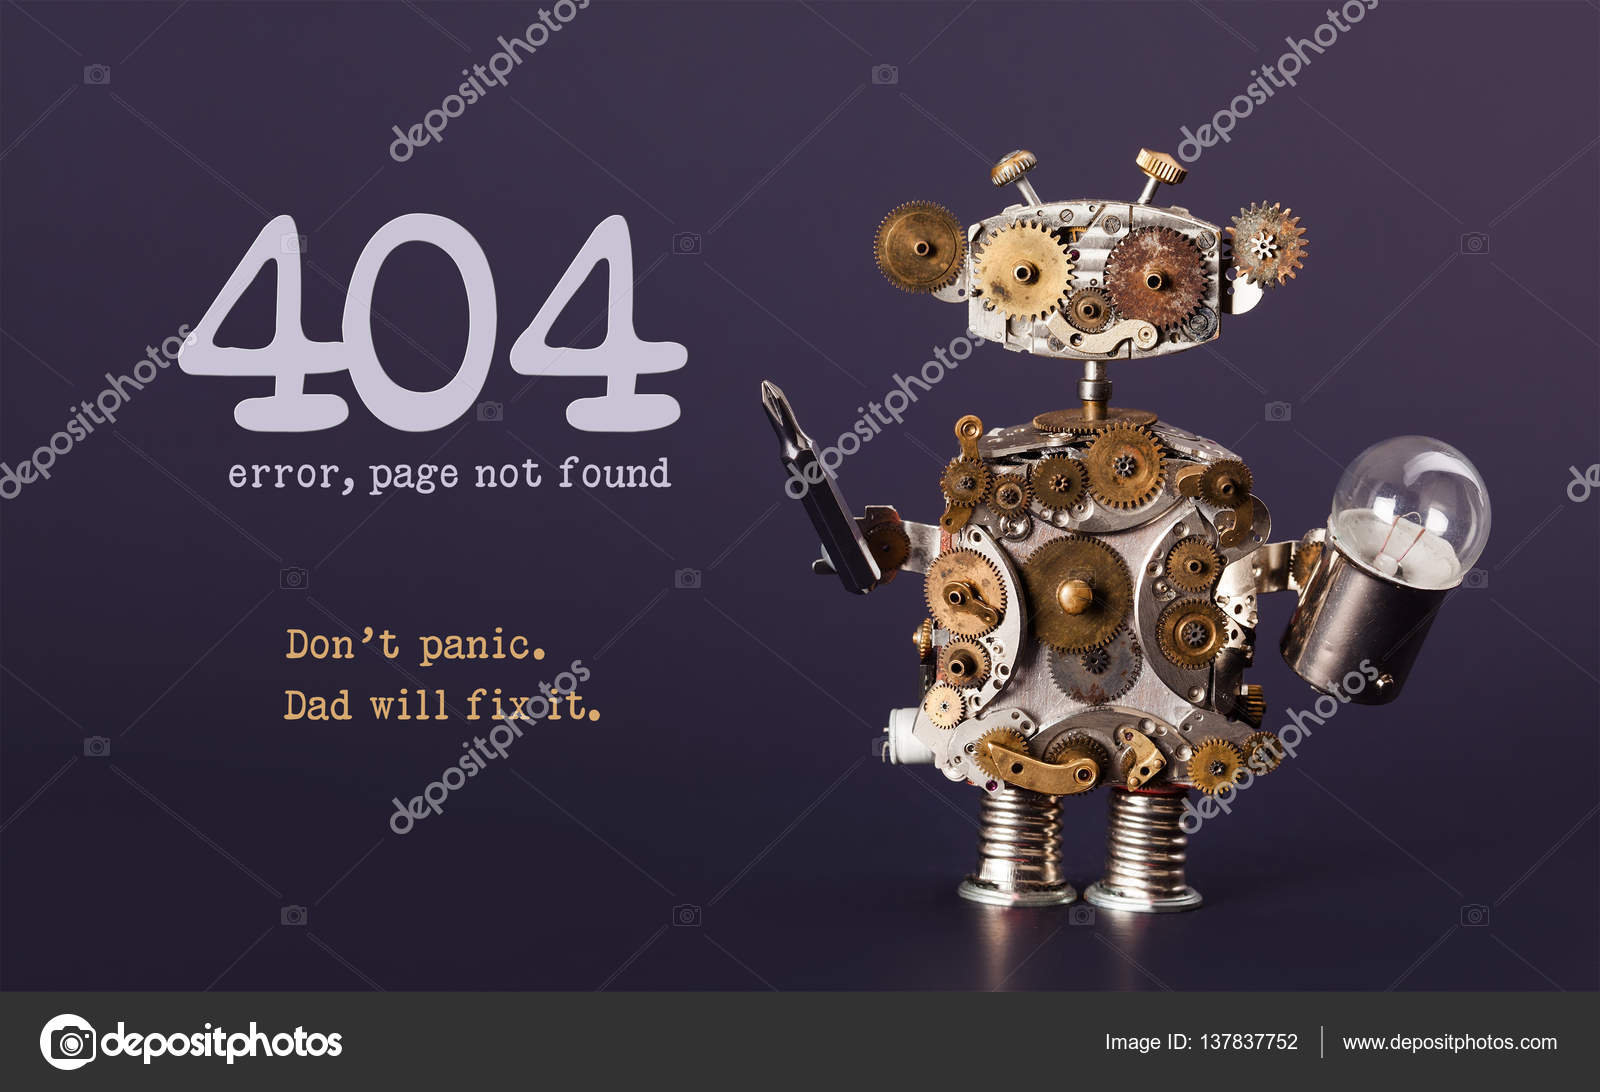 Background image 404 not found - Error 404 Page Not Found Template For Website Steam Punk Style Toy Robot With Screaw